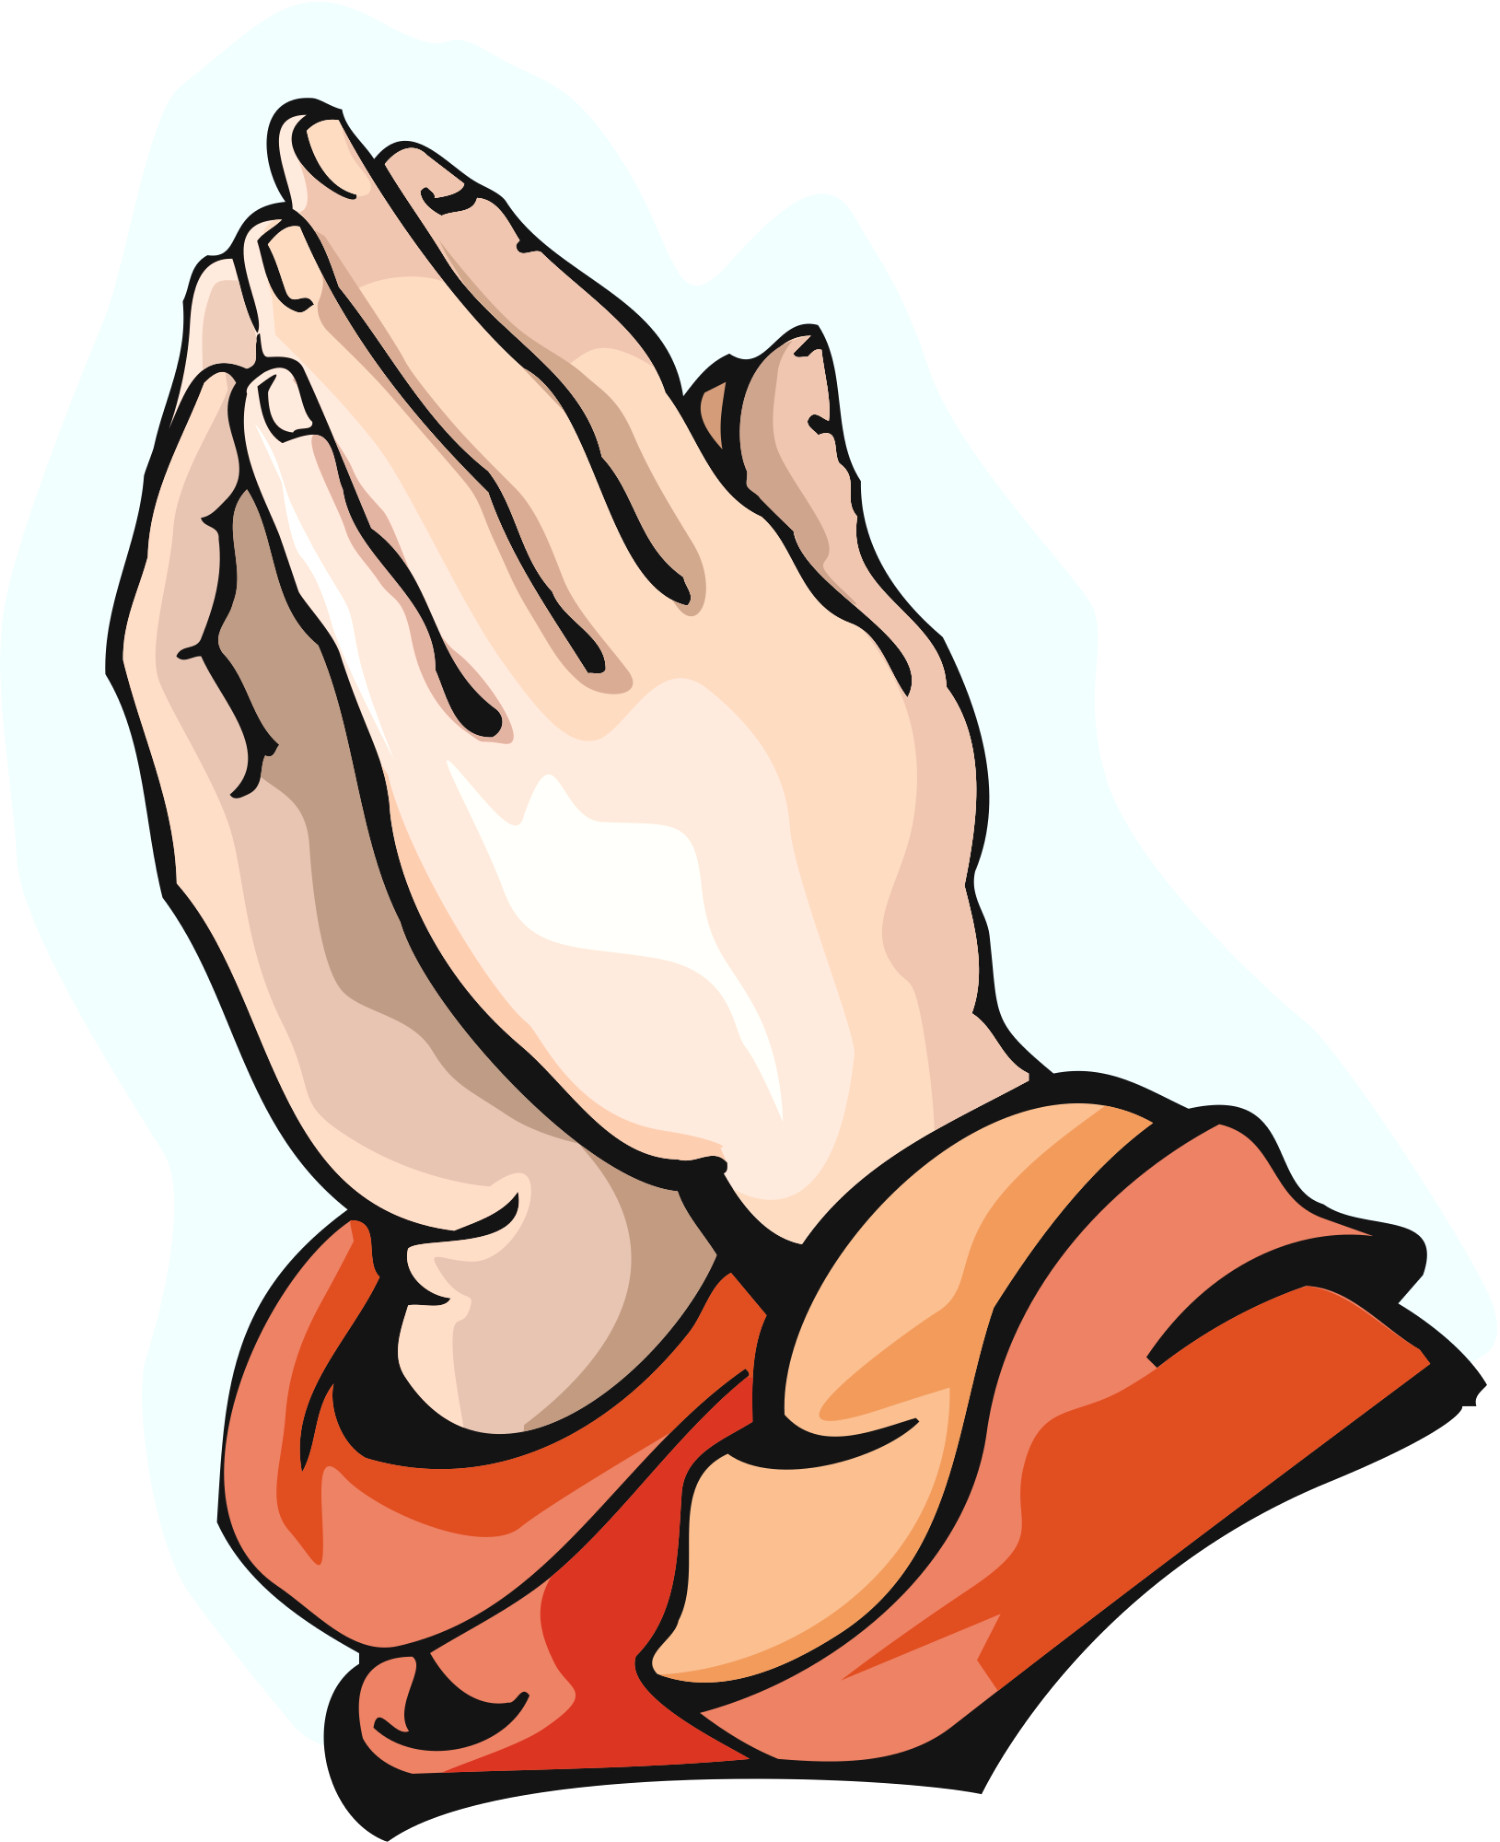 1500x1842 Kids Praying Hands Clipart Thekindproject Pleasing Clip Art